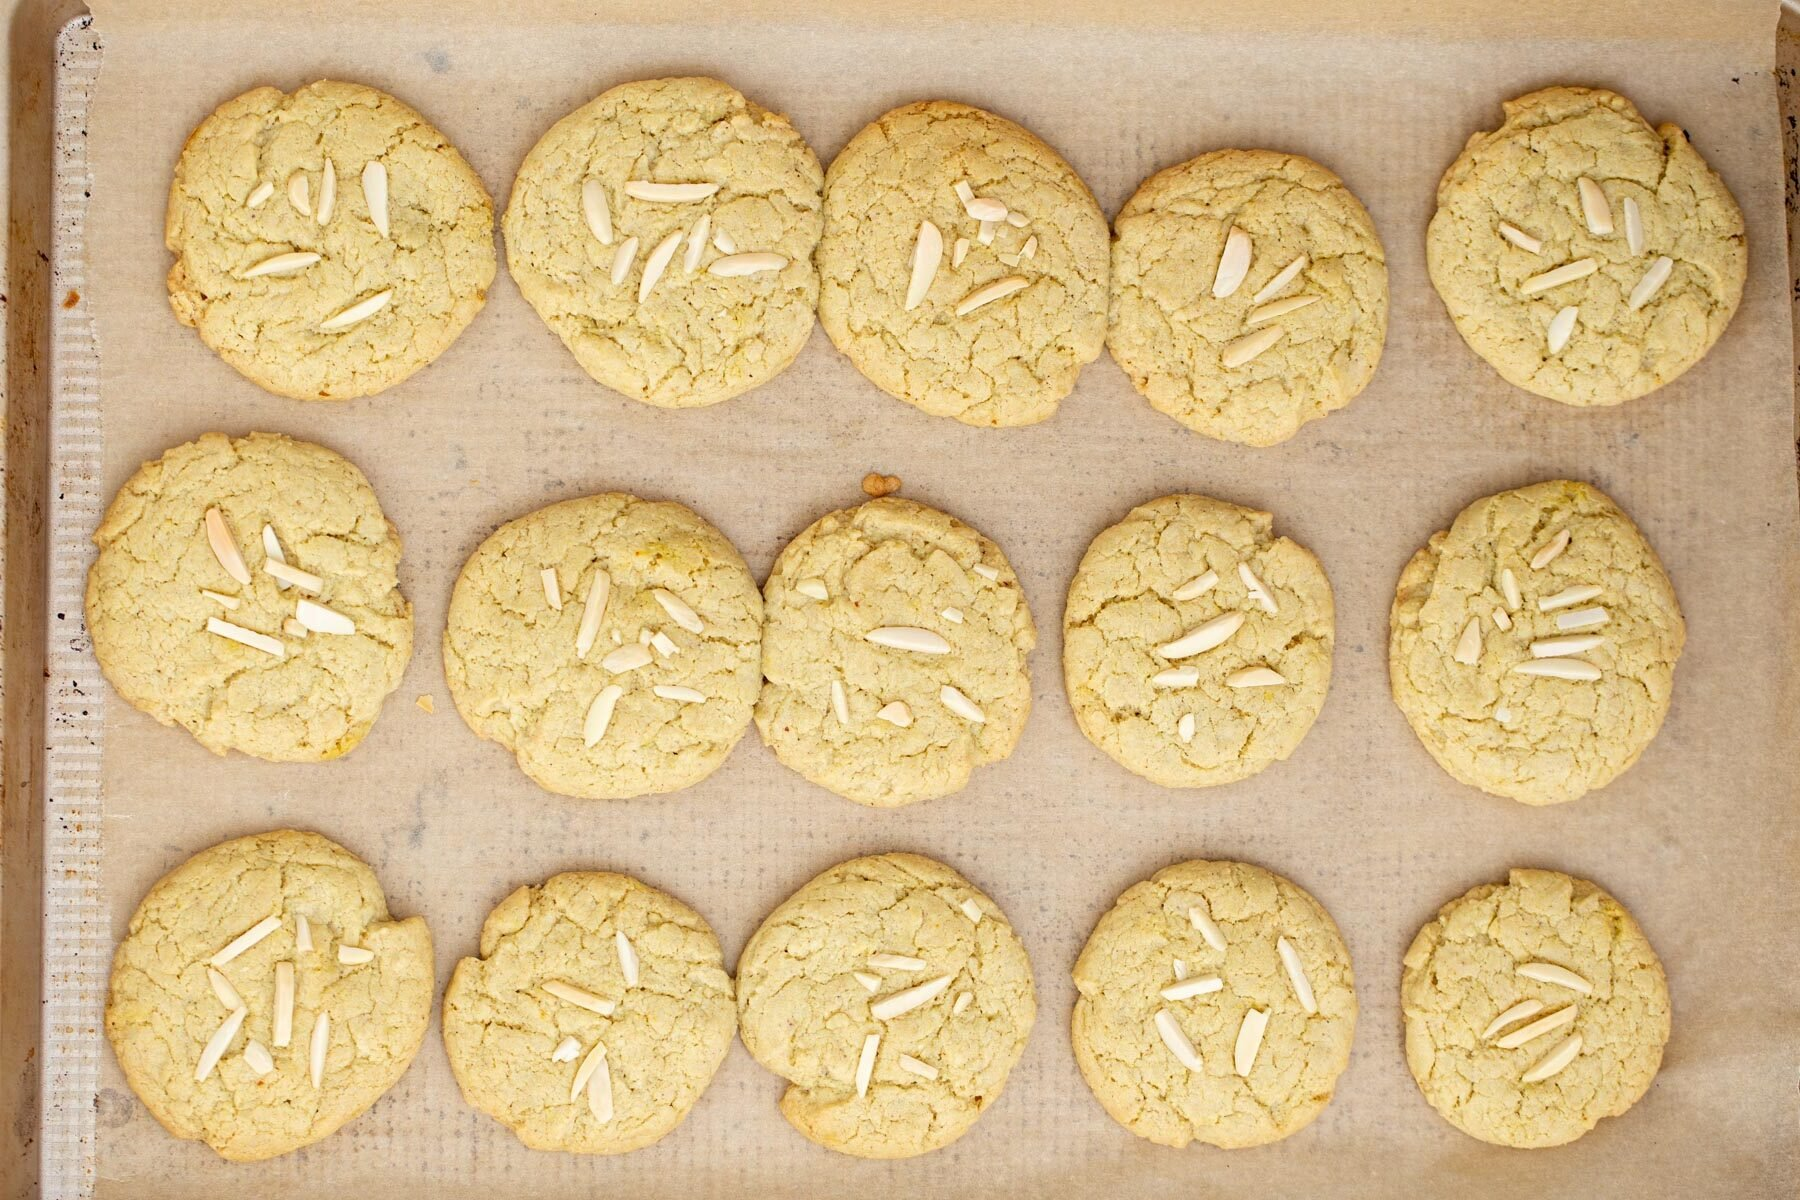 freshly baked vegan pistachio cookies on a lined sheet pan